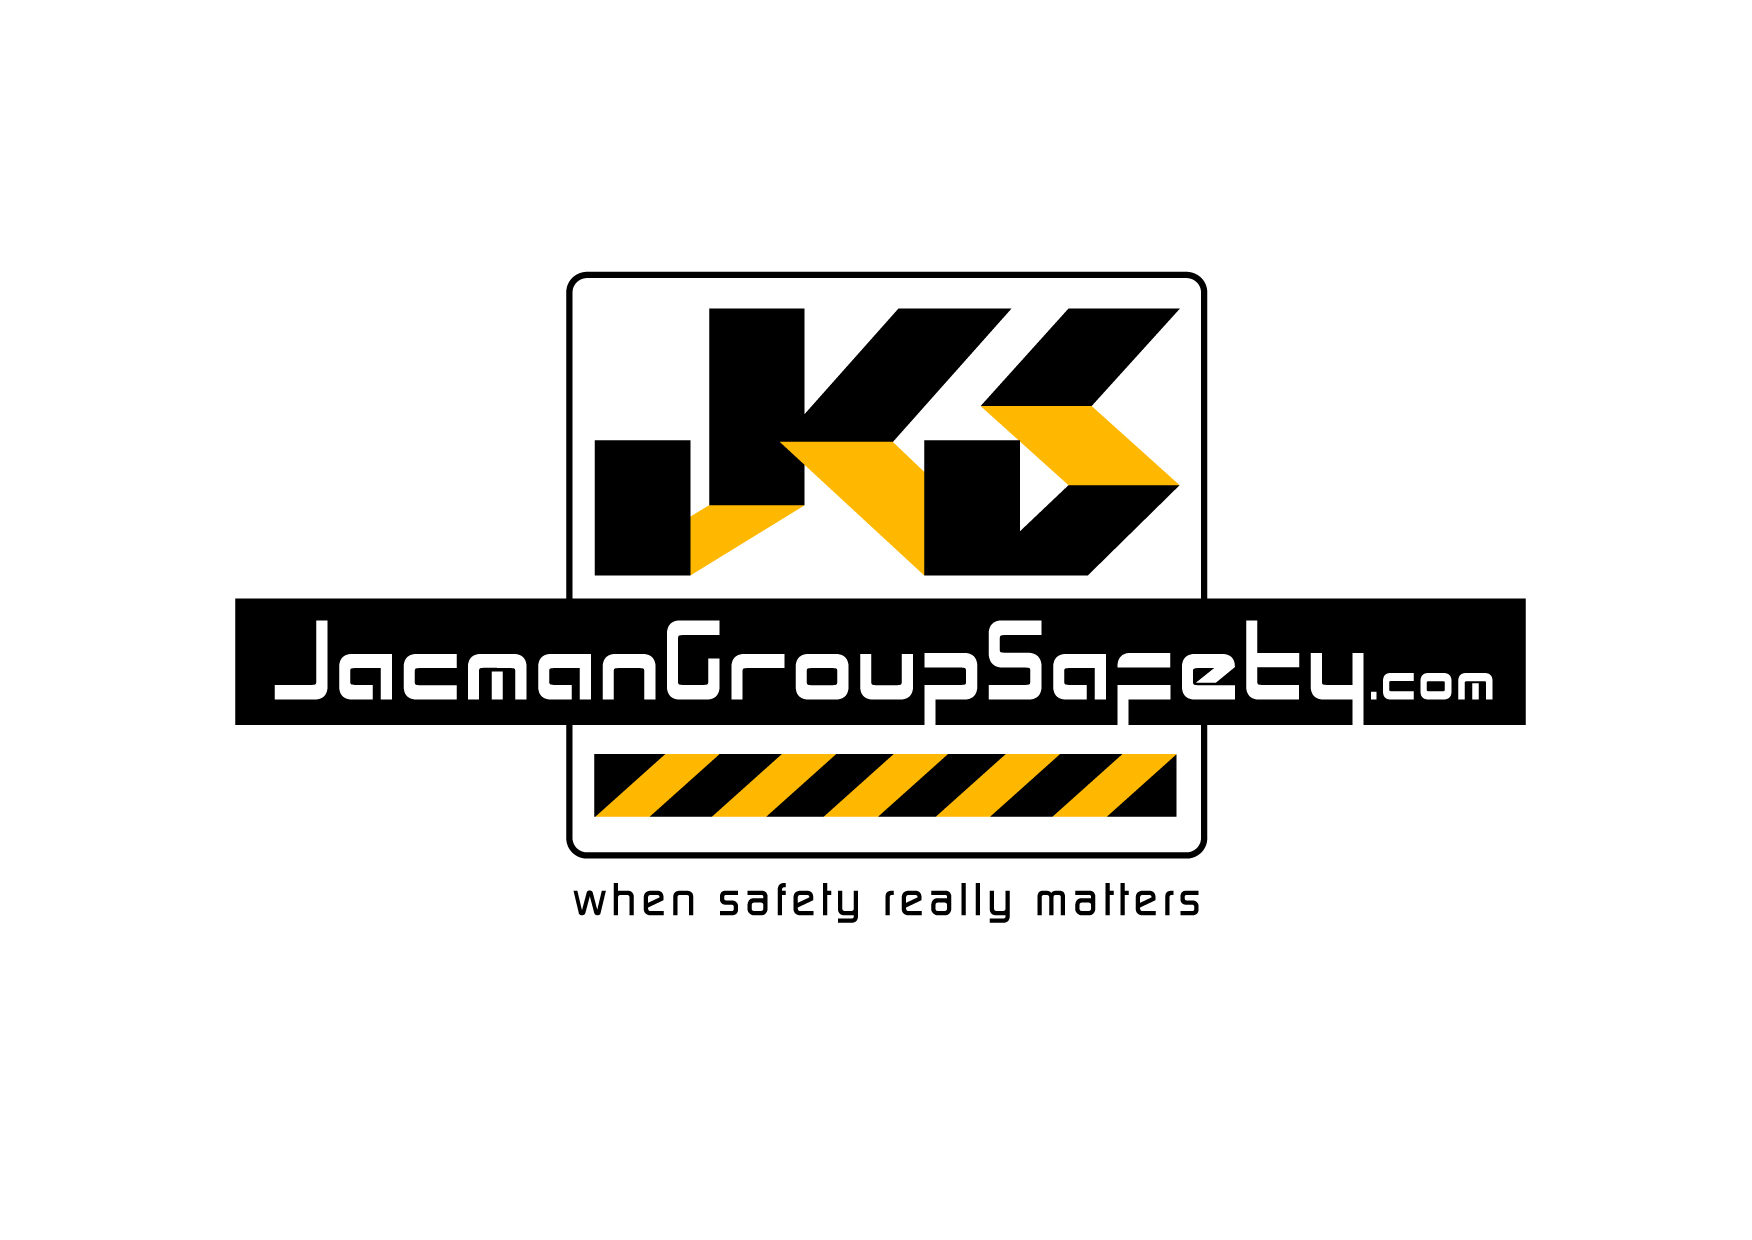 Logo Design by Wilfredo Mendoza - Entry No. 143 in the Logo Design Contest The Jacman Group Logo Design.